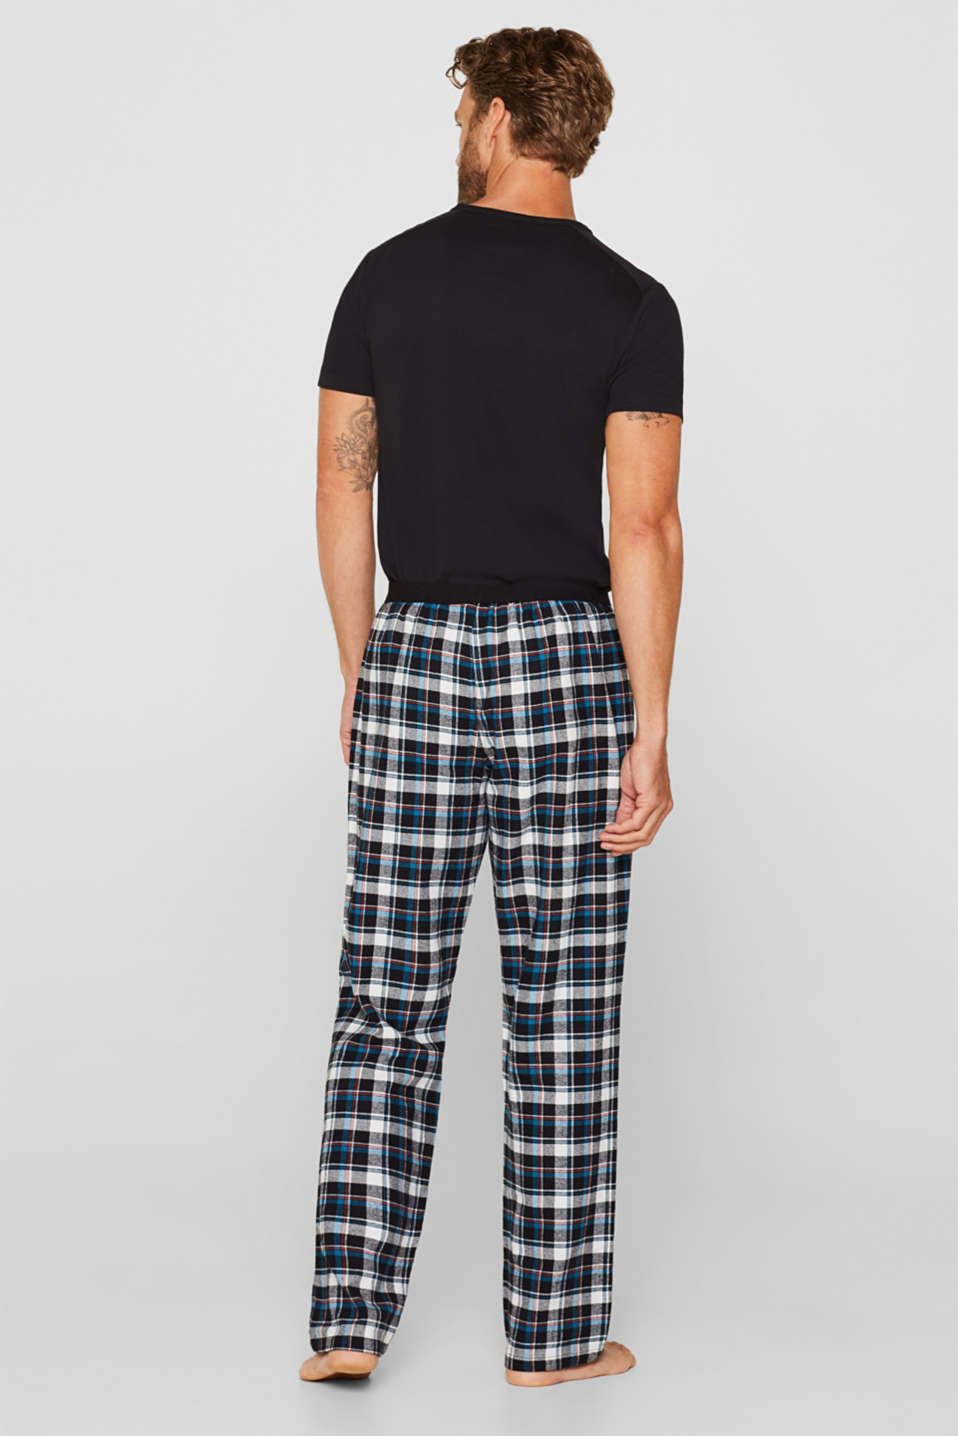 Flannel trousers with checks, 100% cotton, BLACK, detail image number 2